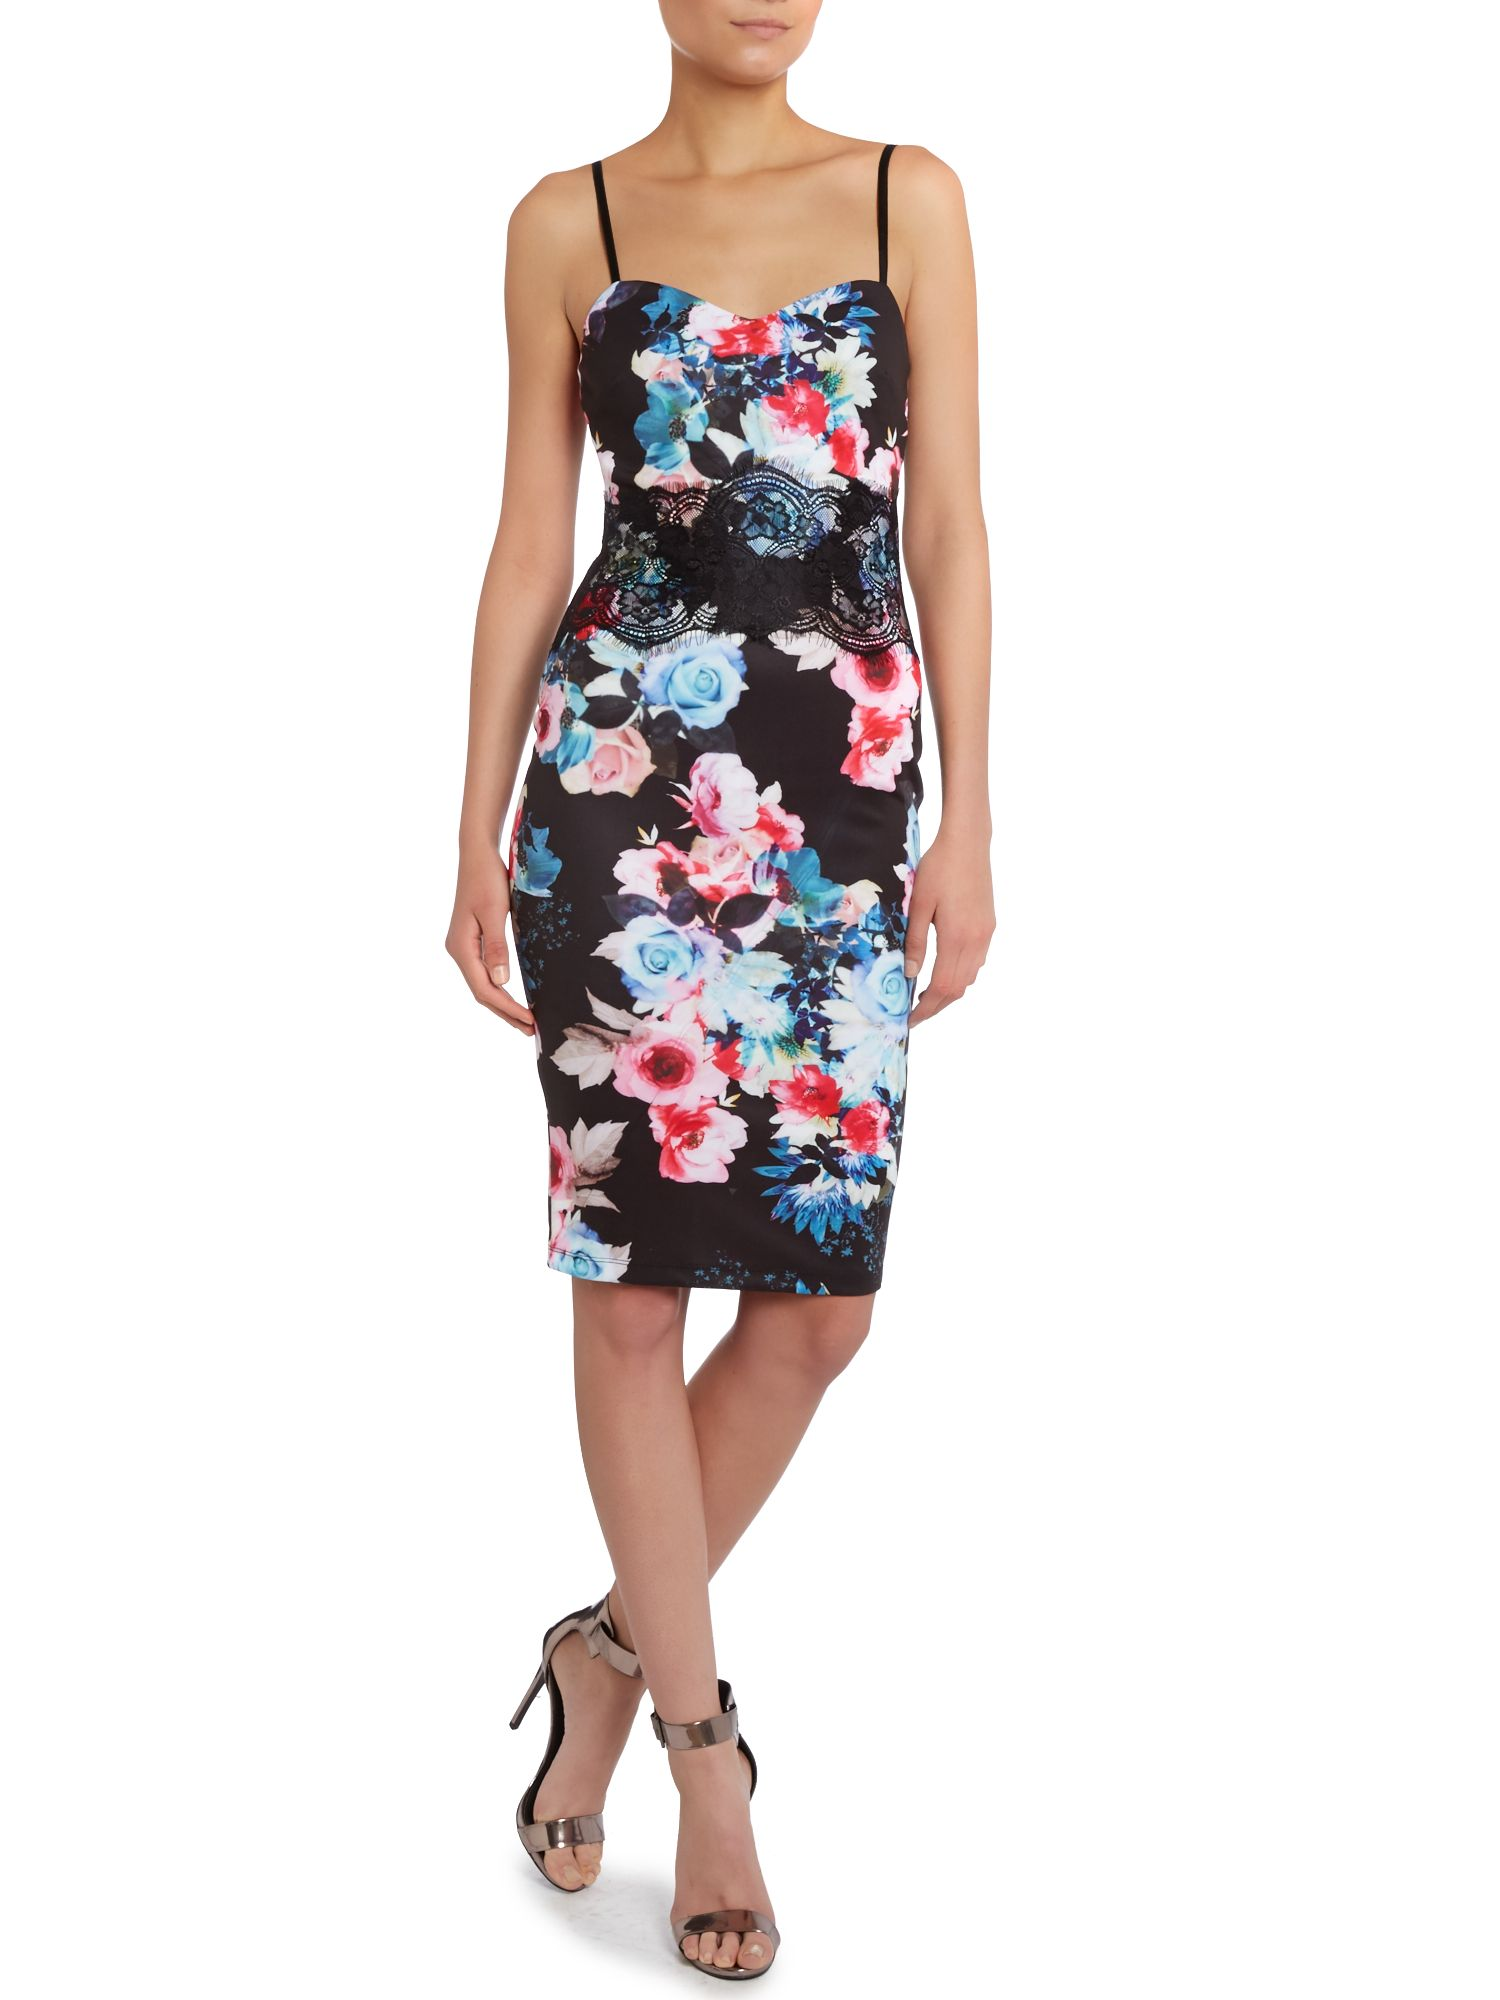 Cami Top Floral Bodycon Dress